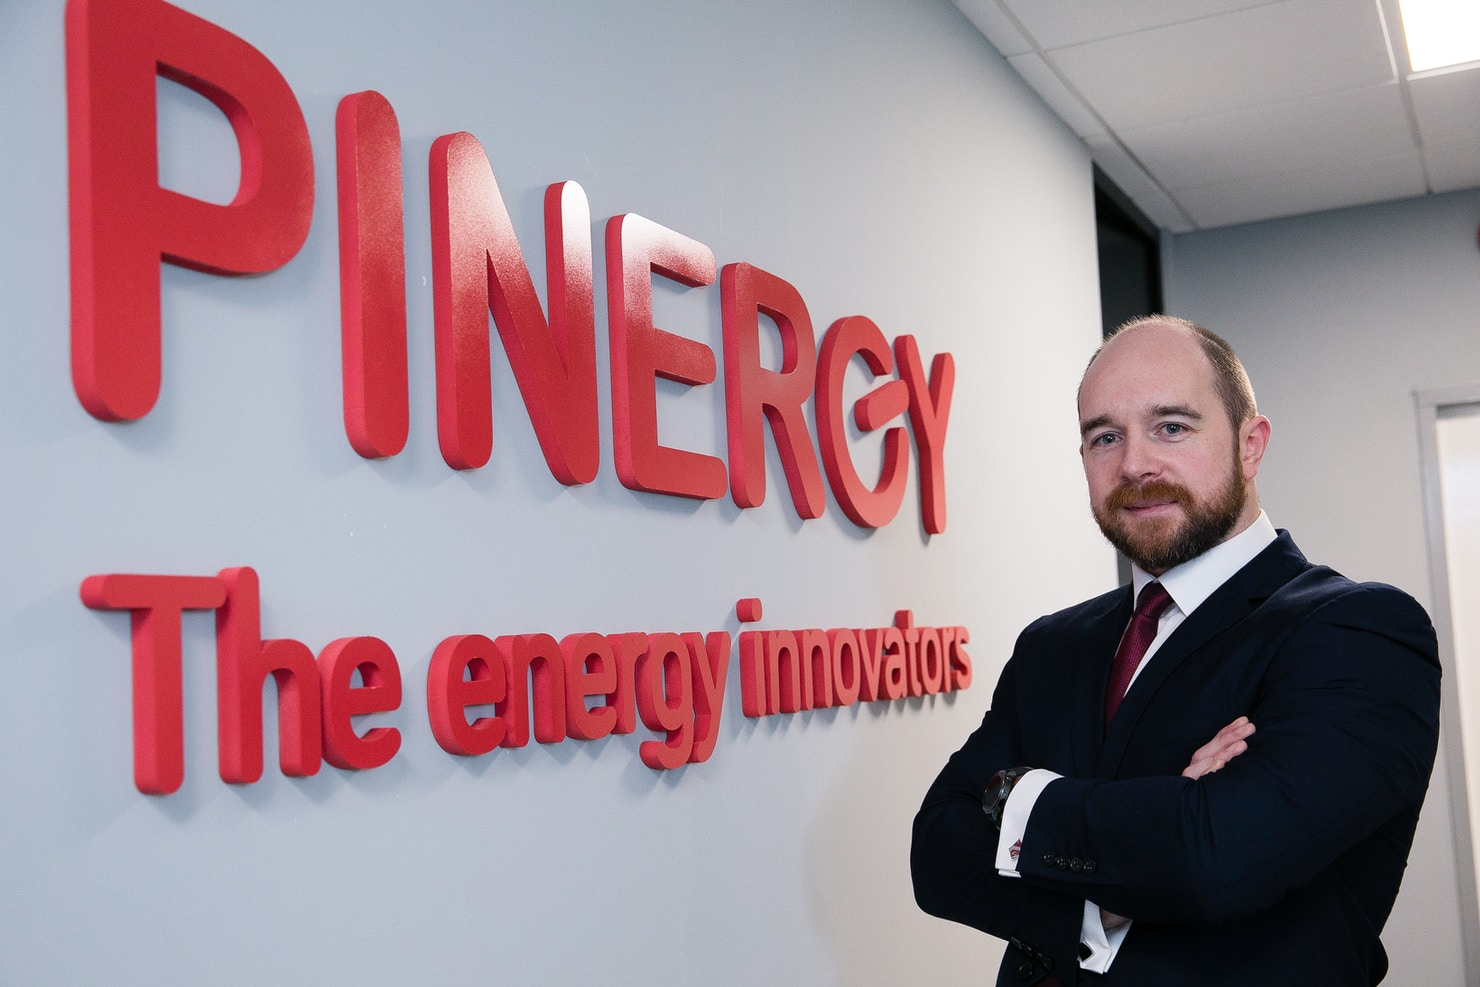 Pinergy appoints Philip Connor as head of energy services